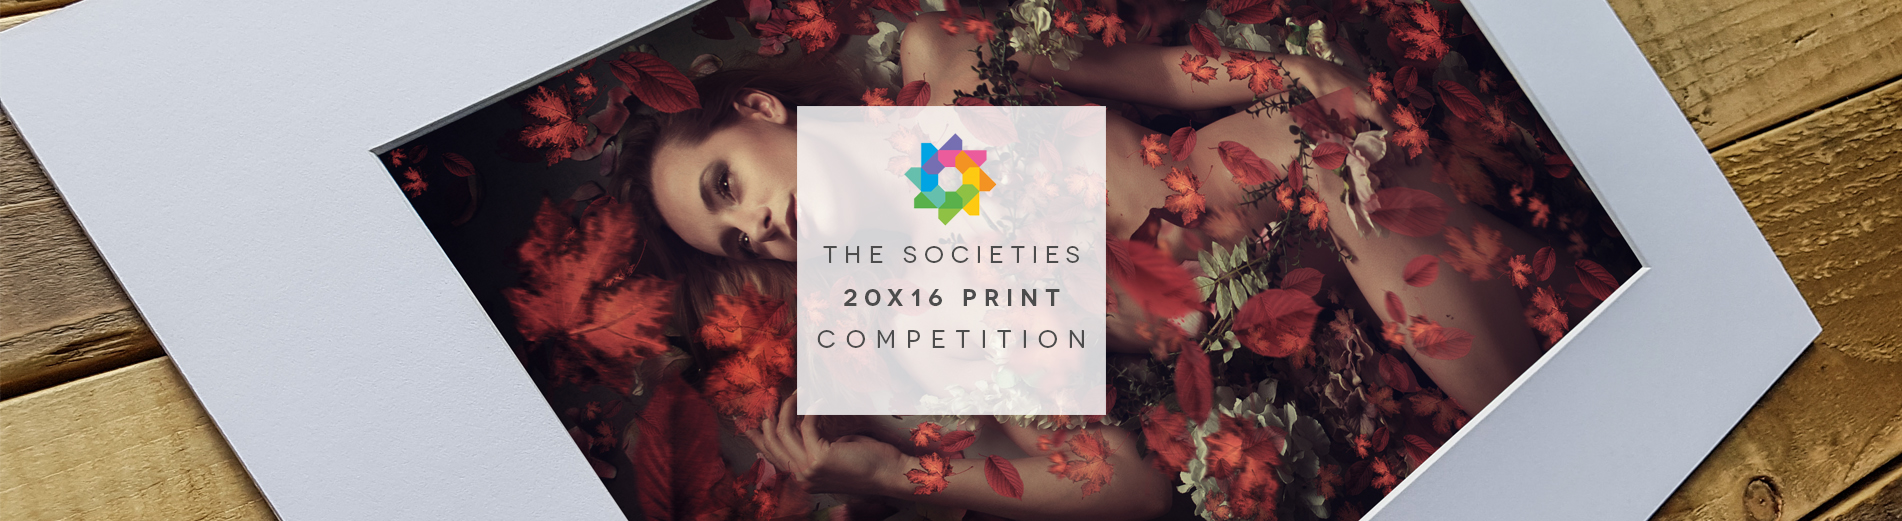 The 20x16 Print Competition